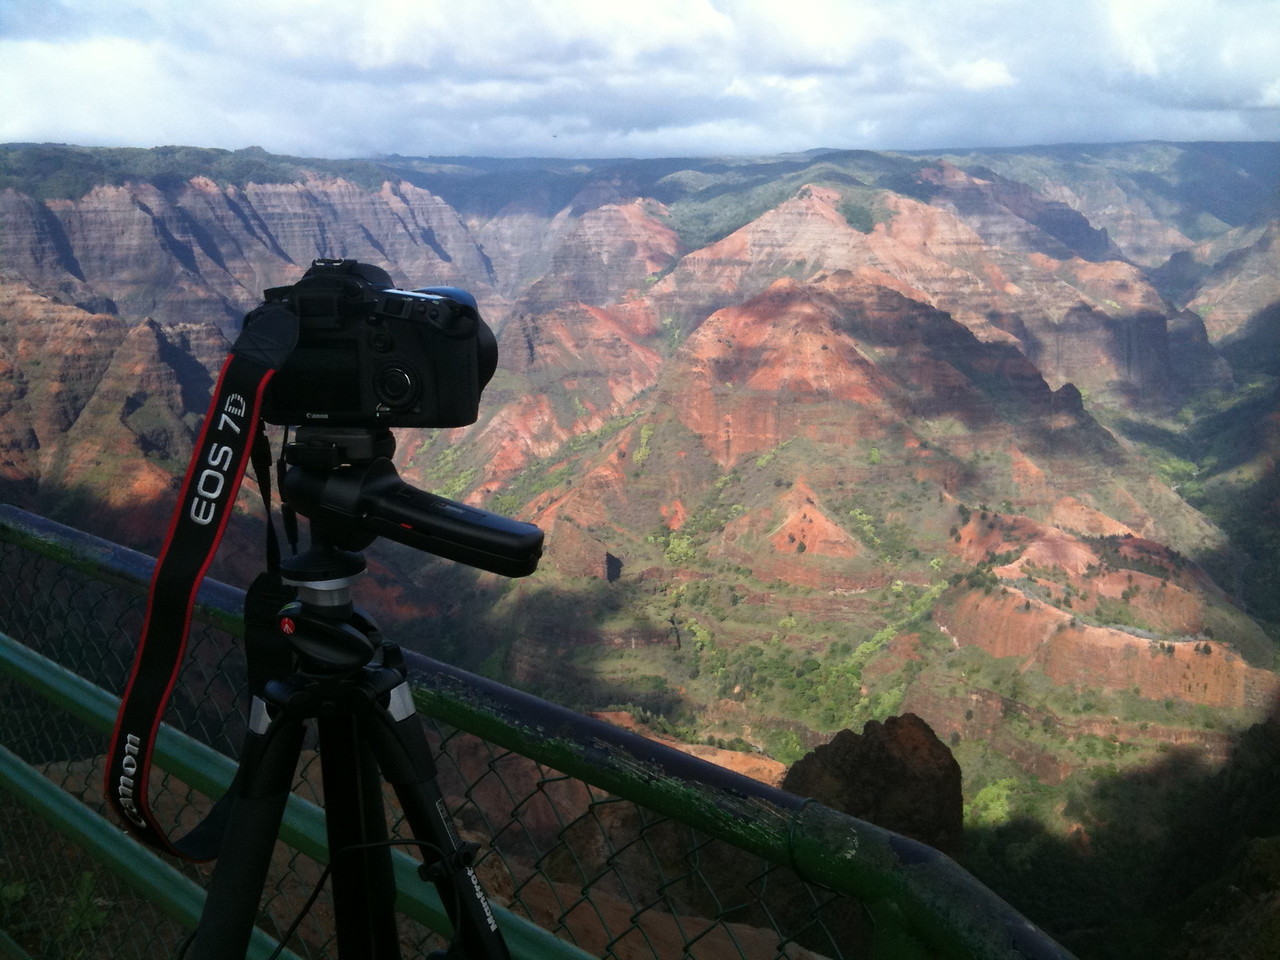 Canon 7D time-lapse photography setup from Waimea Canyon Lookout. Taken with iPhone.  View time-lapse movie gallery.  http://simpson3.smugmug.com/Other/Video/10078717_oP8Qf#790367258_ukr5k